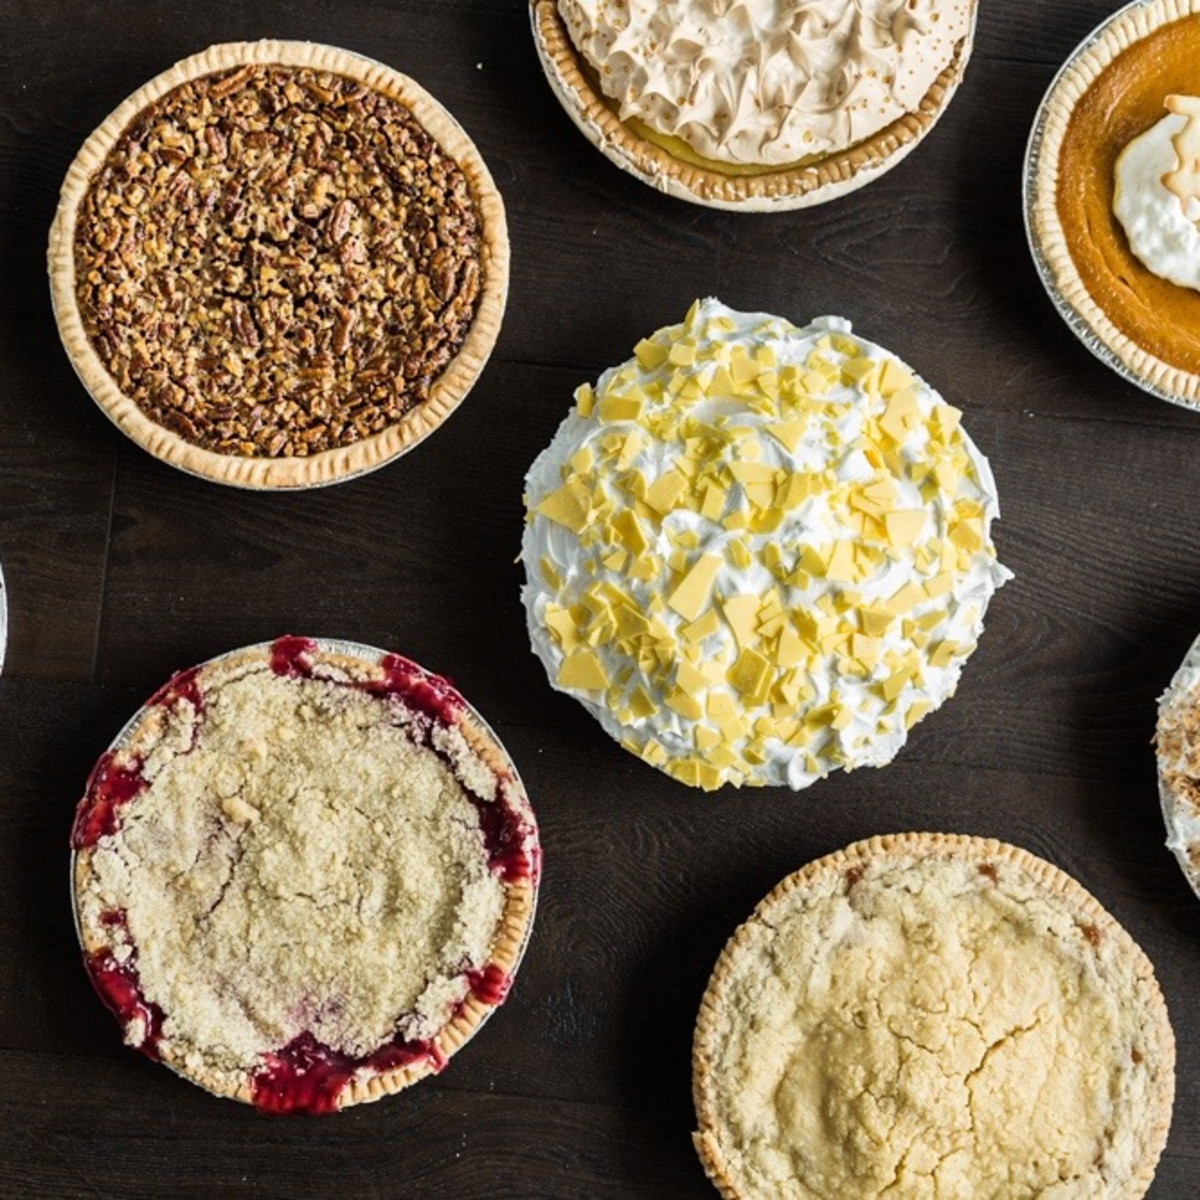 Petite Sweets pies